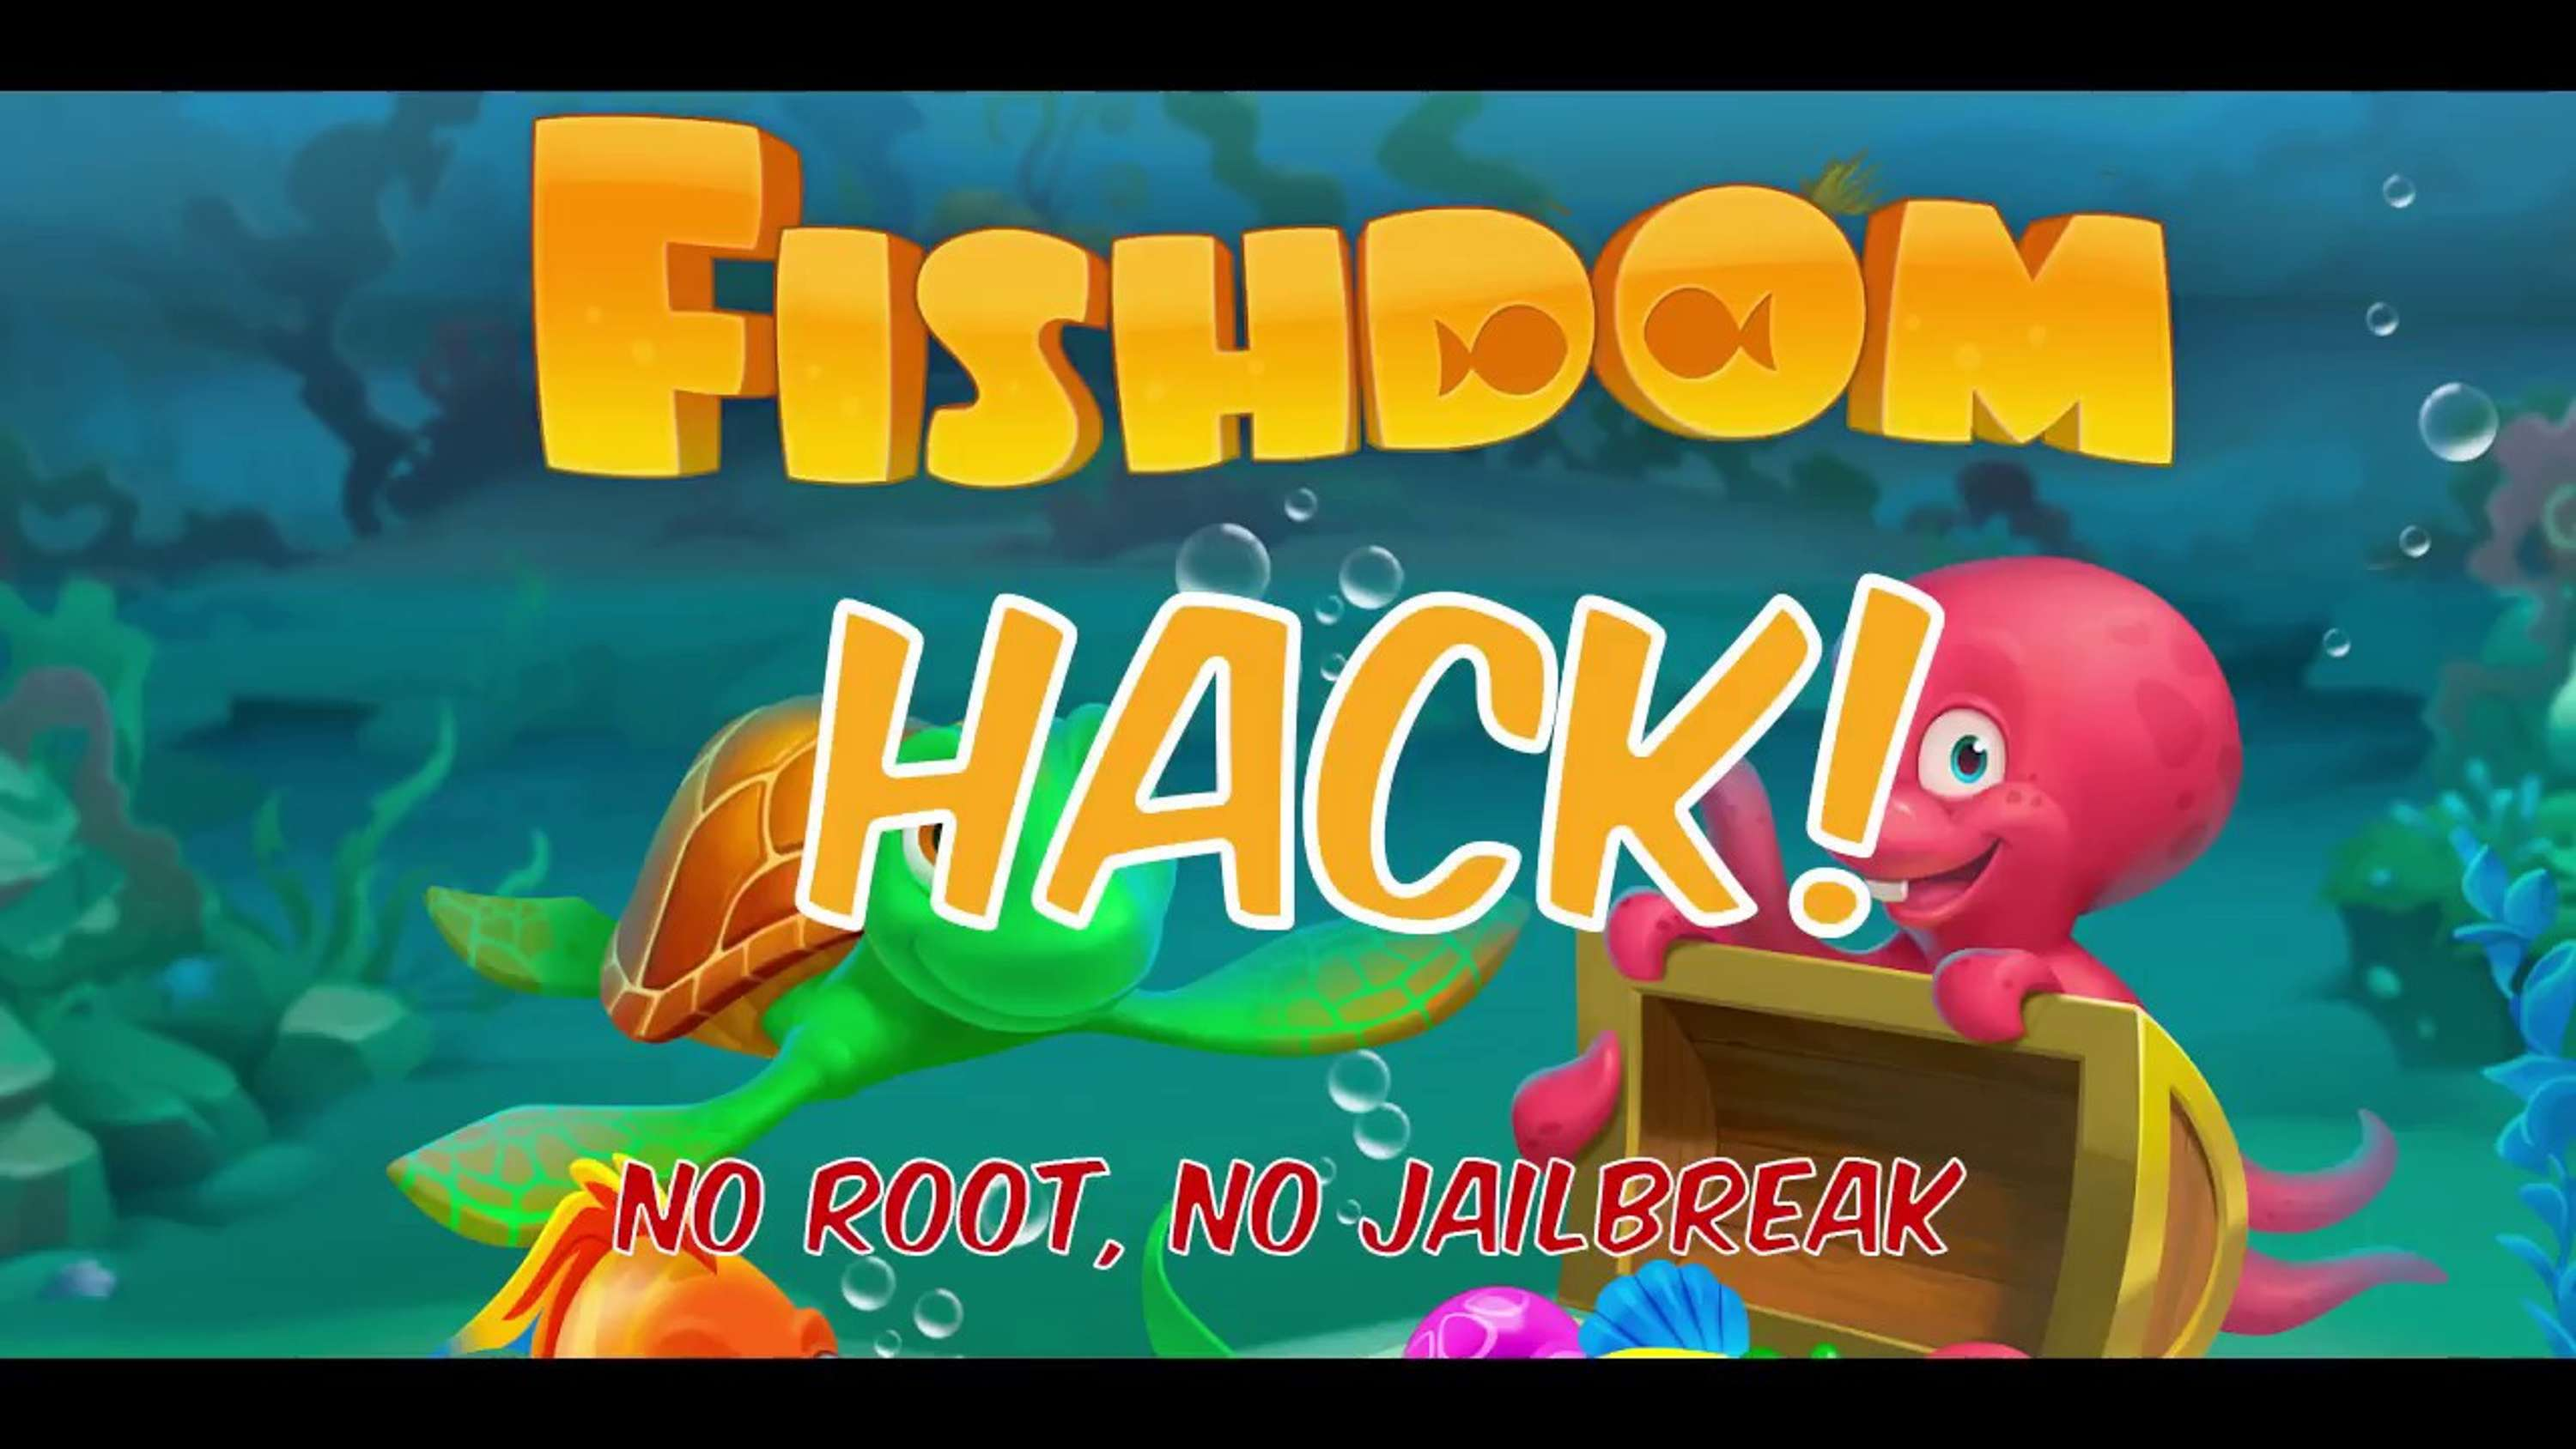 Proven] Fishdom Hack Apk Download - What is the use of the